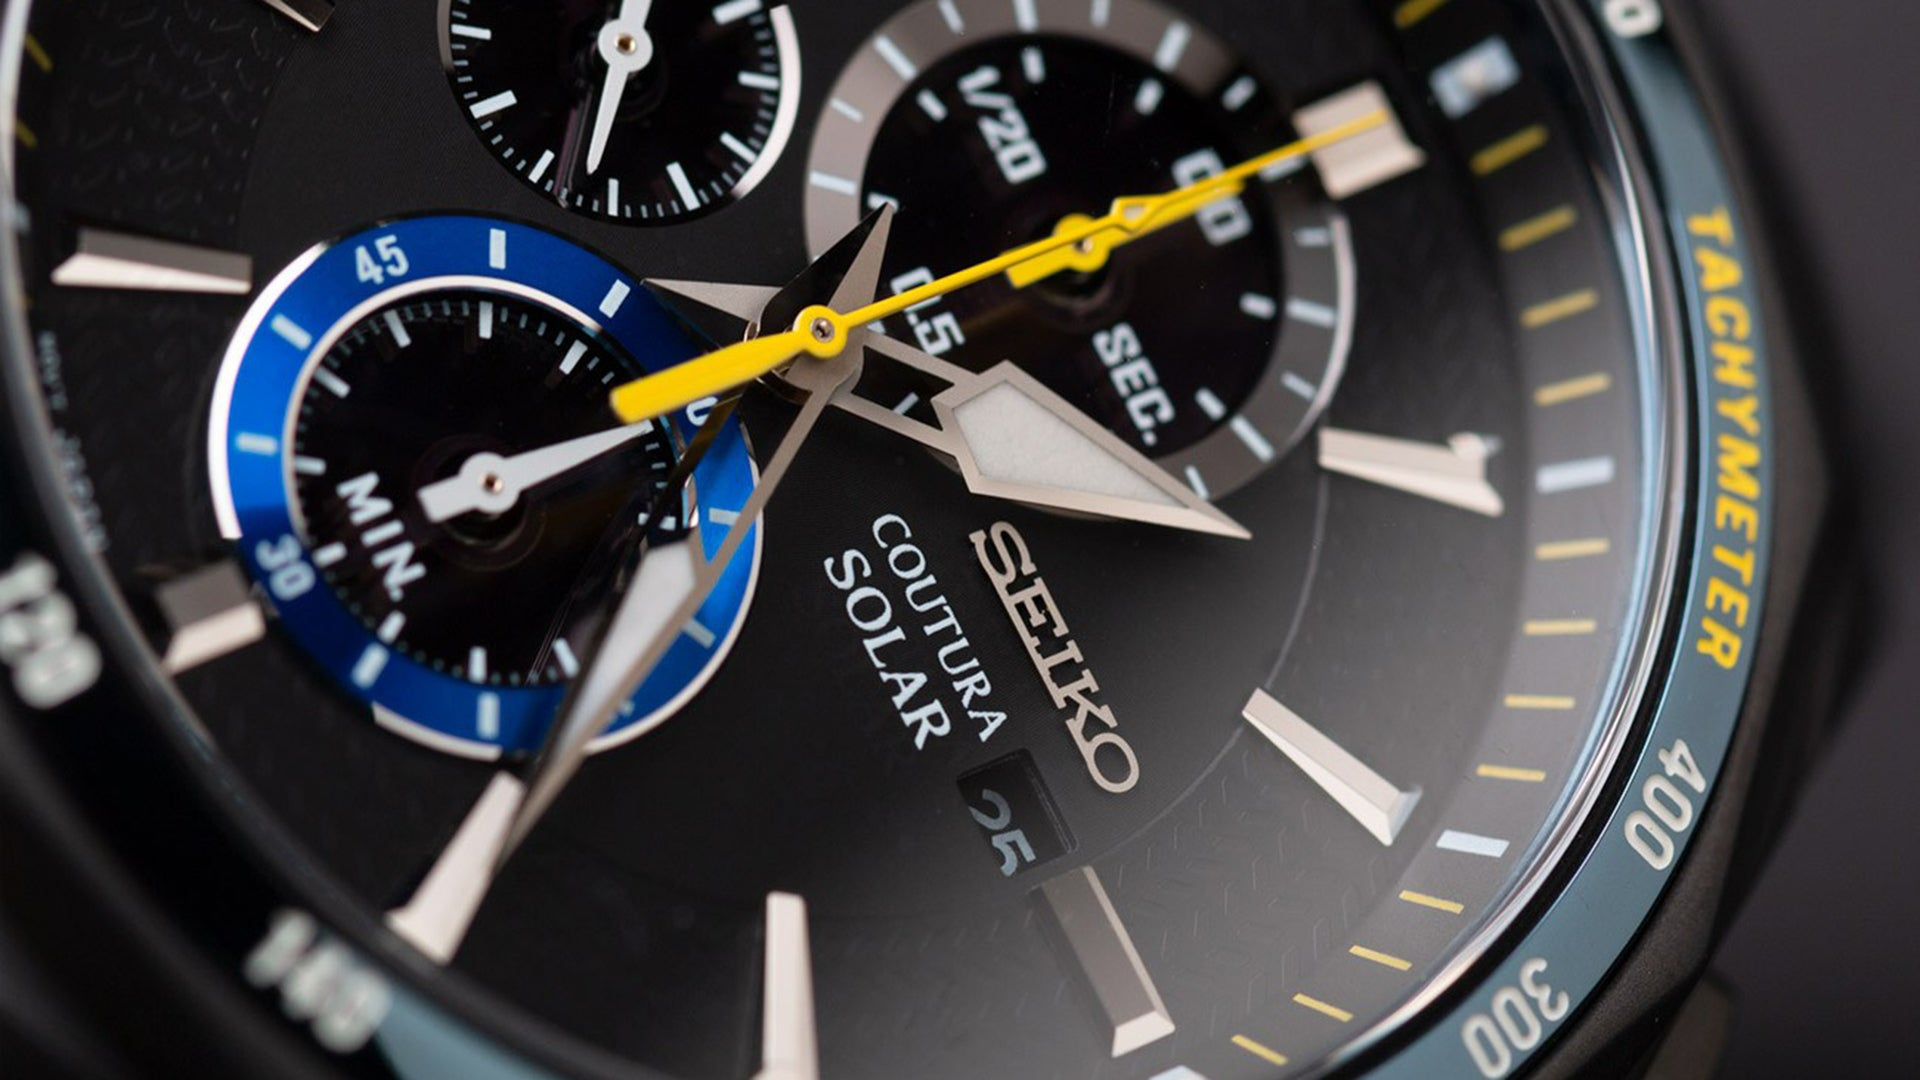 Seiko Coutura Solar Chronograph Jimmie Johnson Special Edition Watch Hands-On